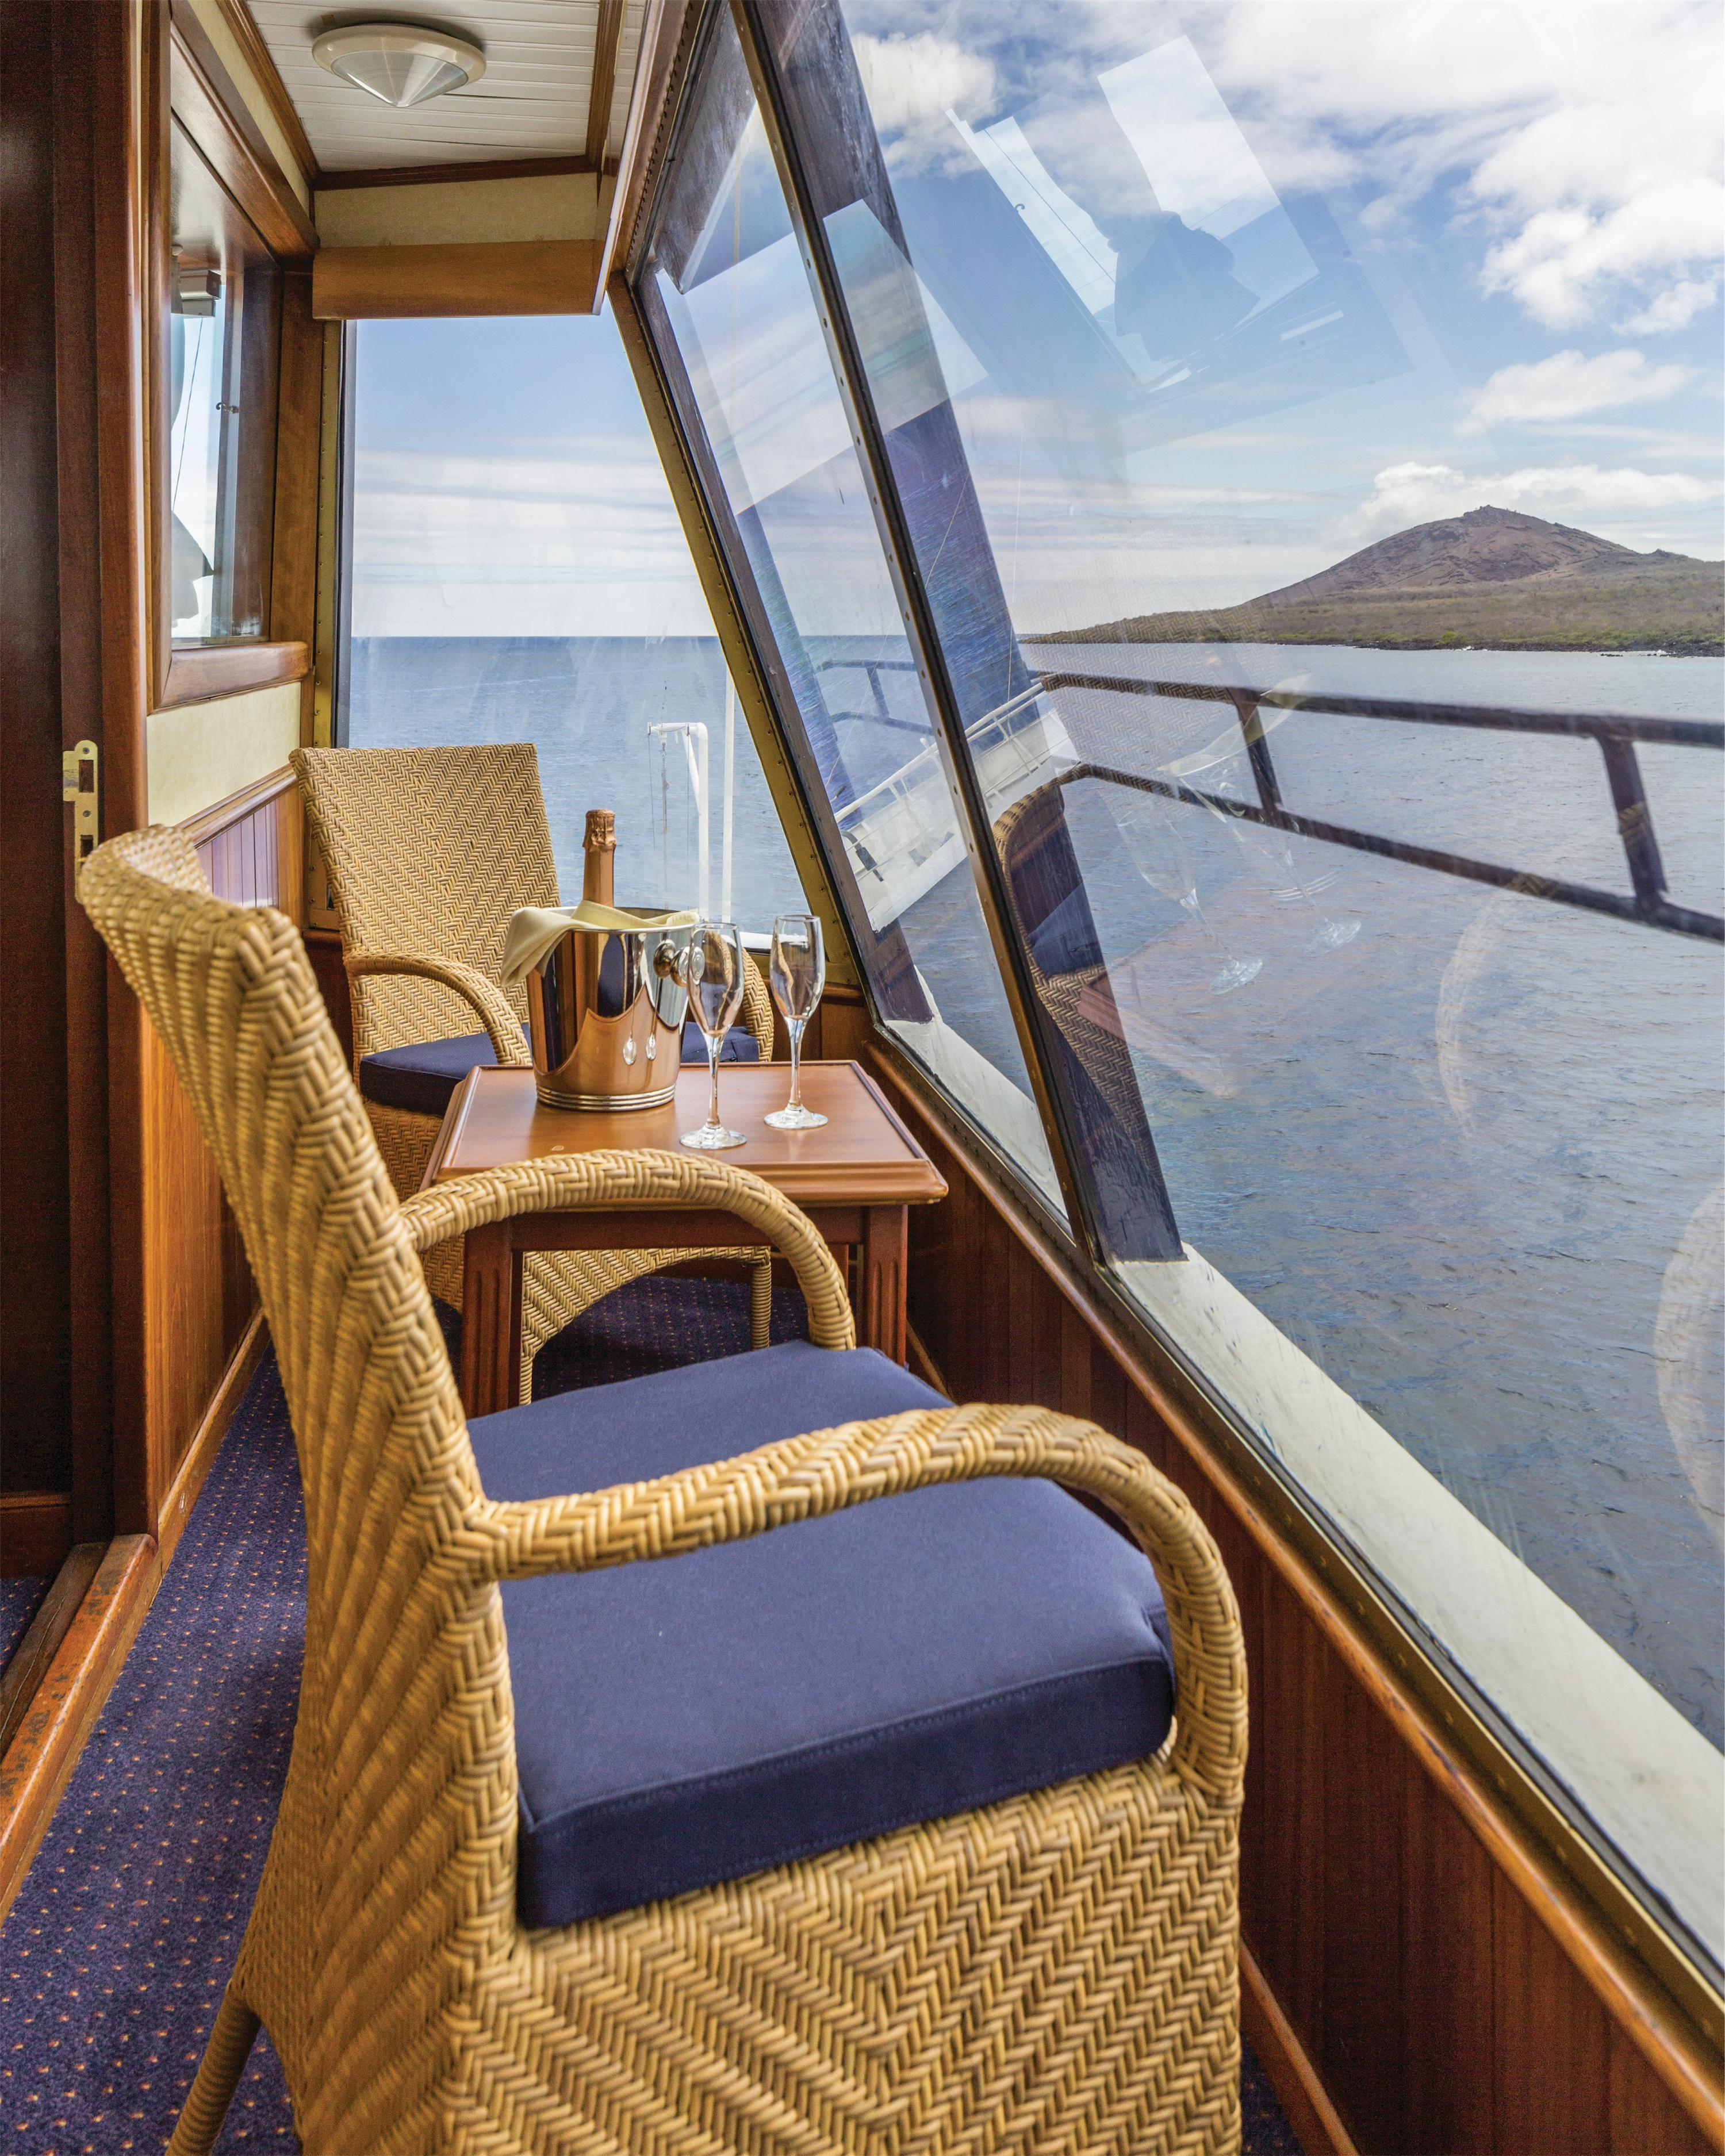 Lindblad Expeditions National Geographic Islander Accommodation Category 5 Balcony.jpg